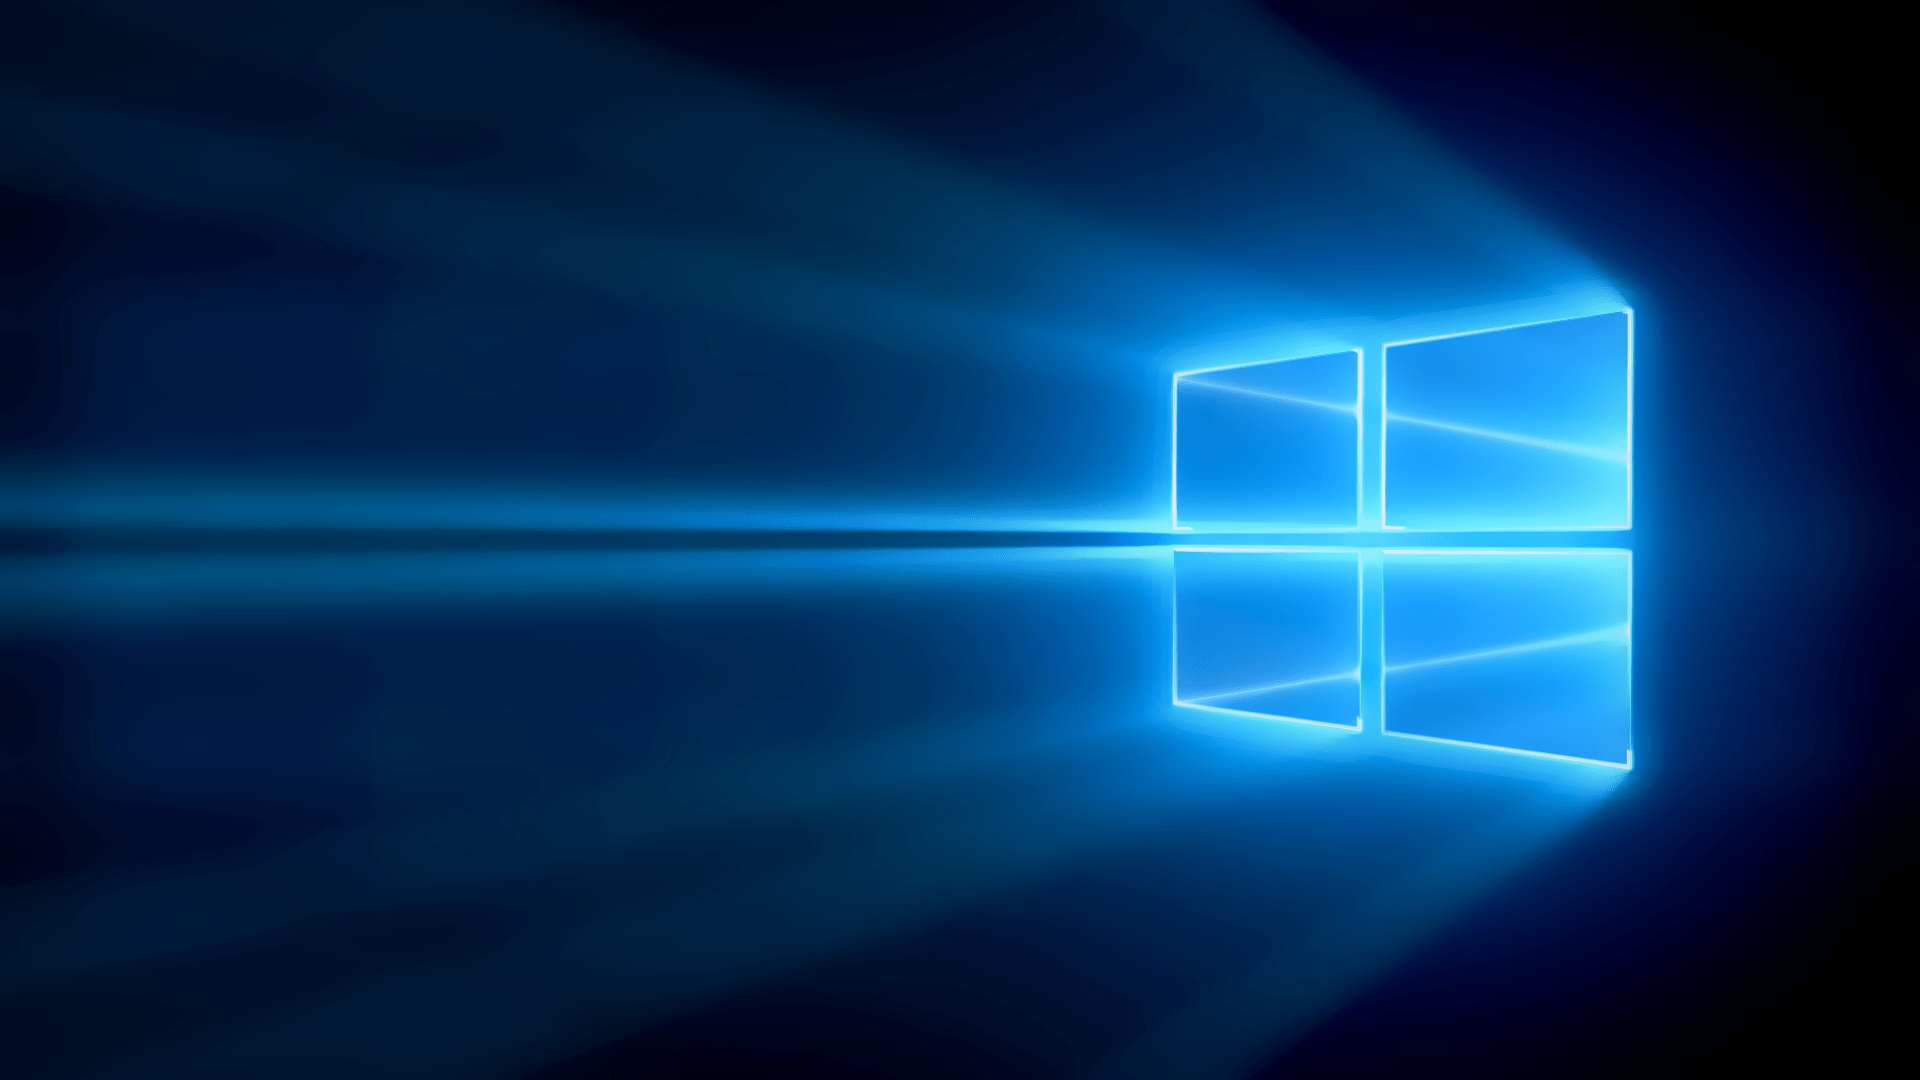 Soluciona los problemas con Windows 10 Anniversary Update